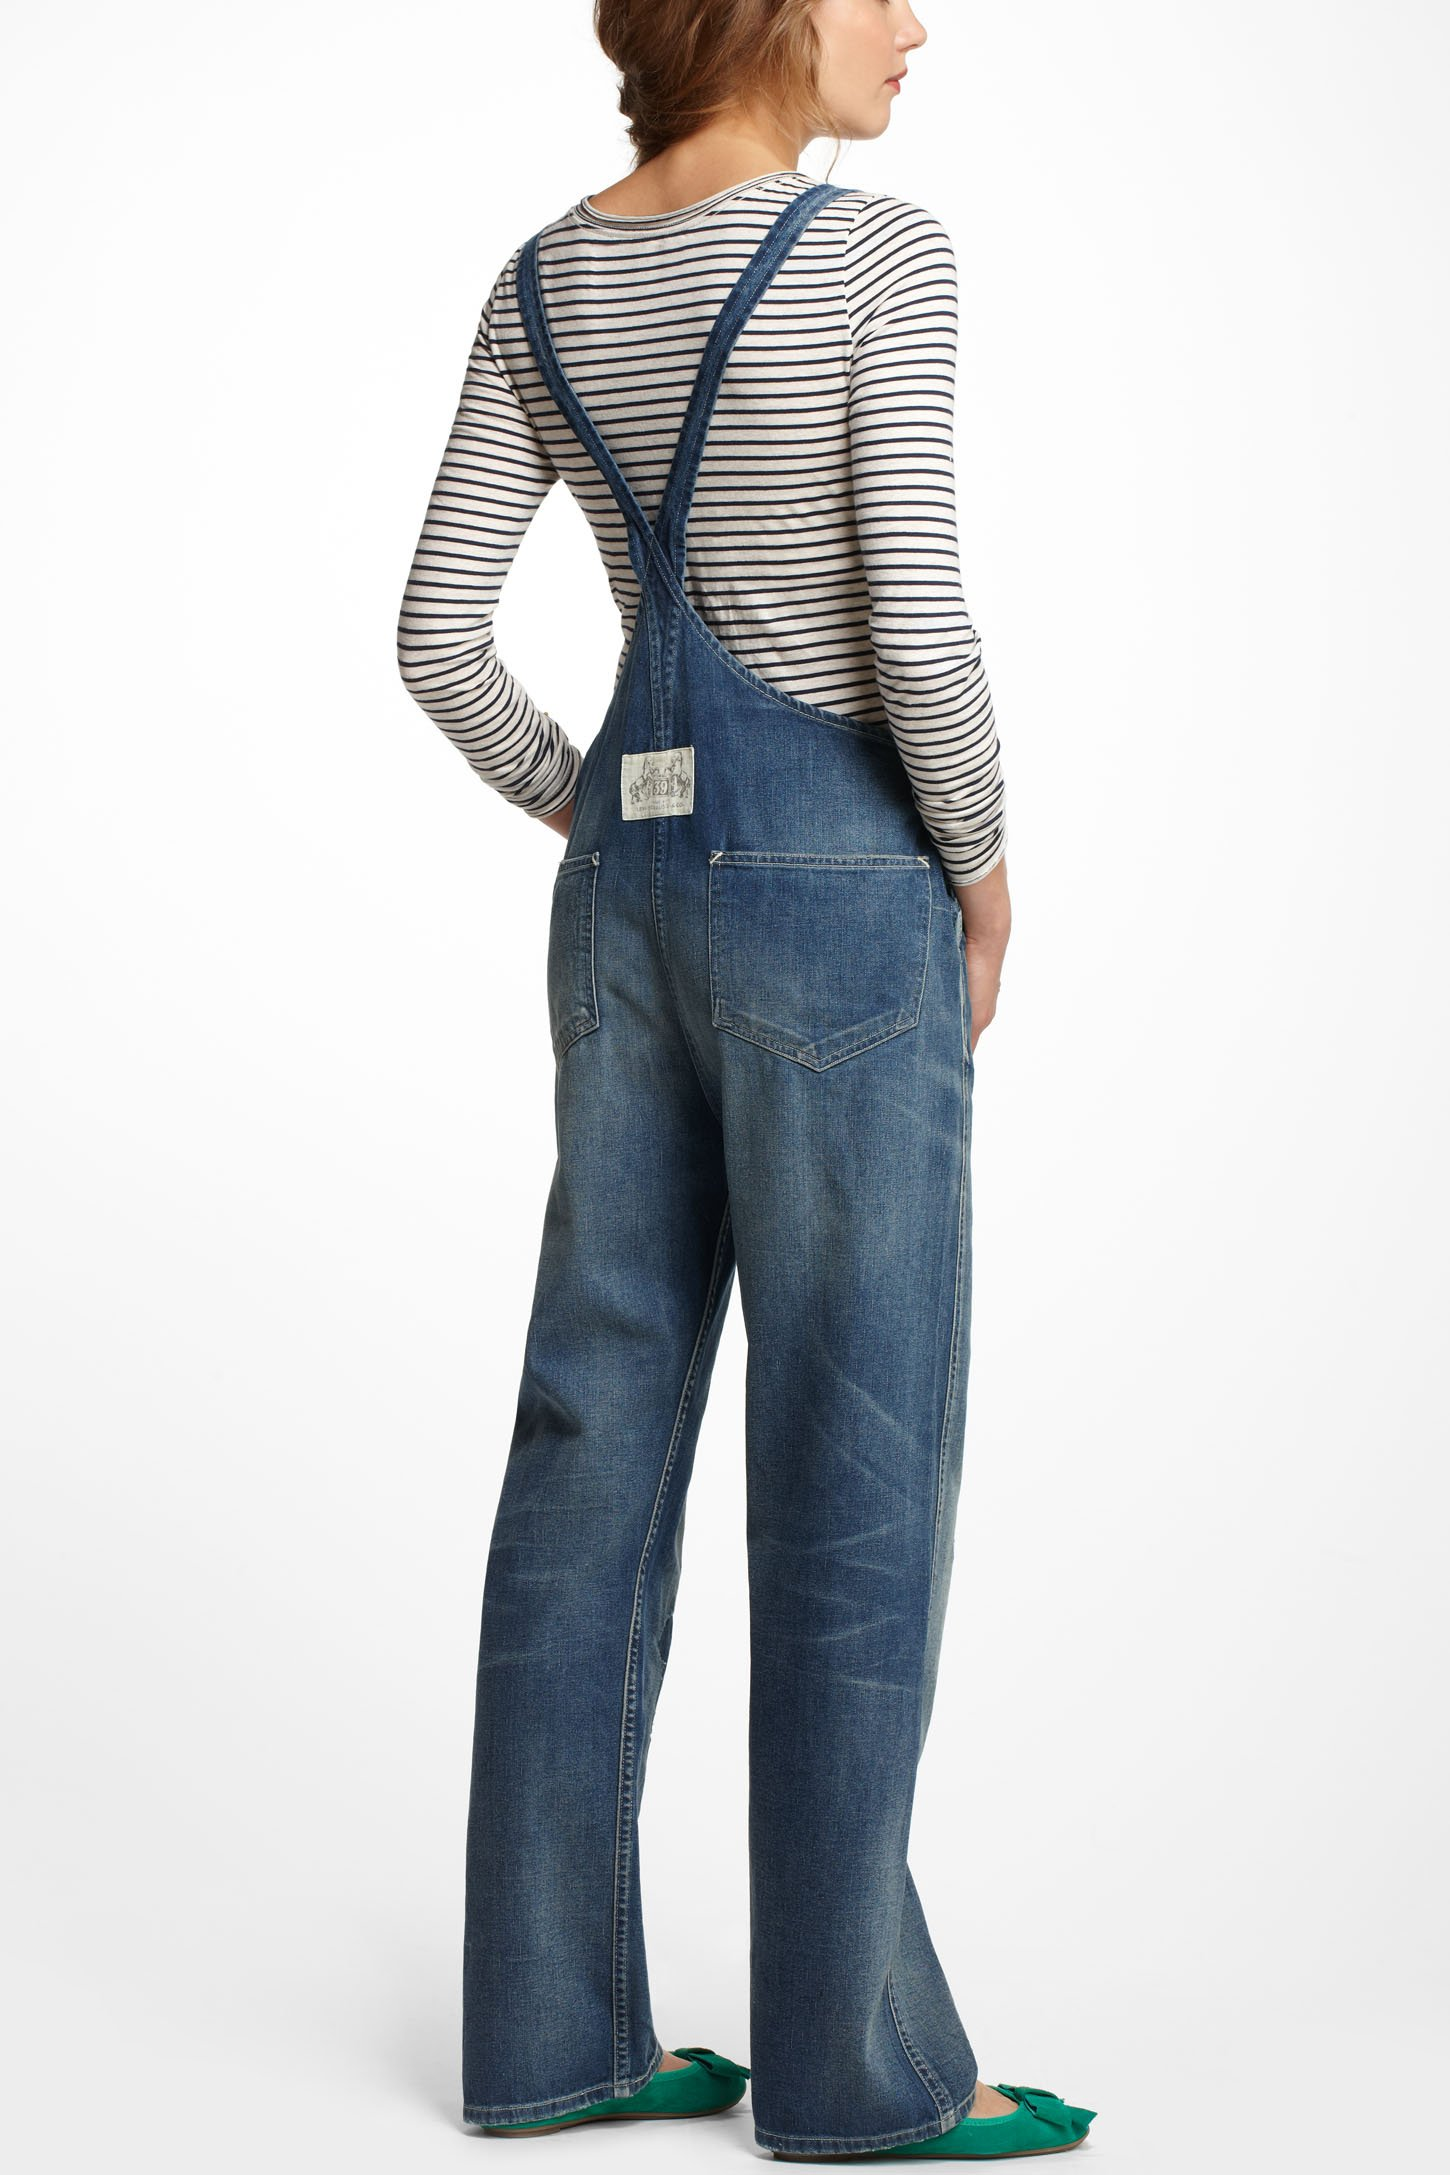 Fashion overalls for women 2